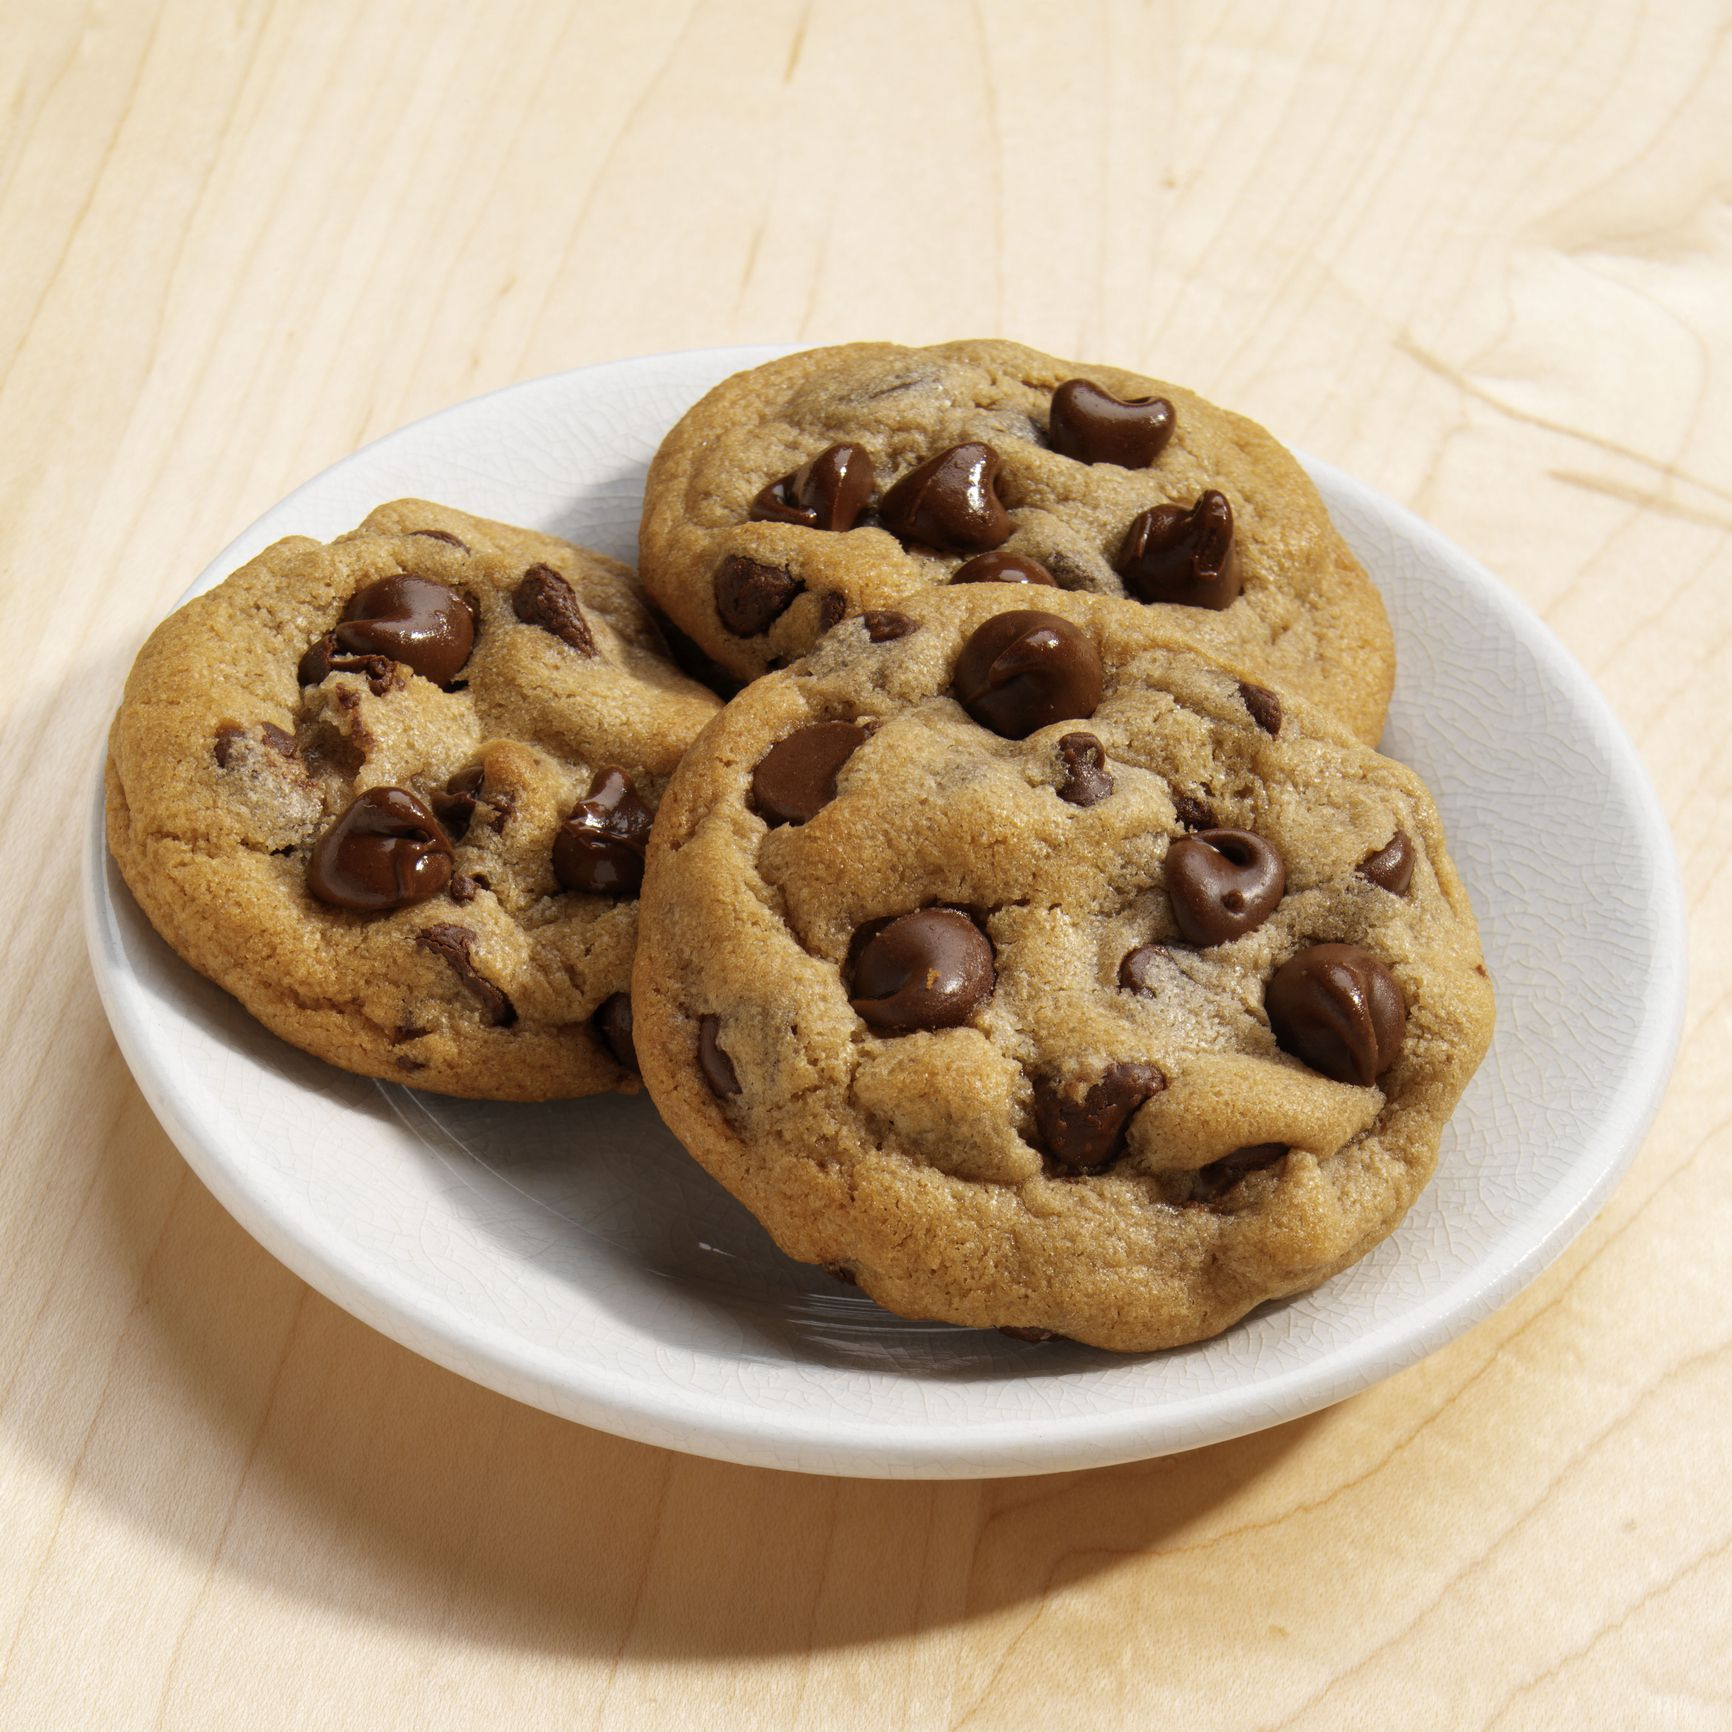 A Recipe for Jumbo Chocolate Chip Cookies